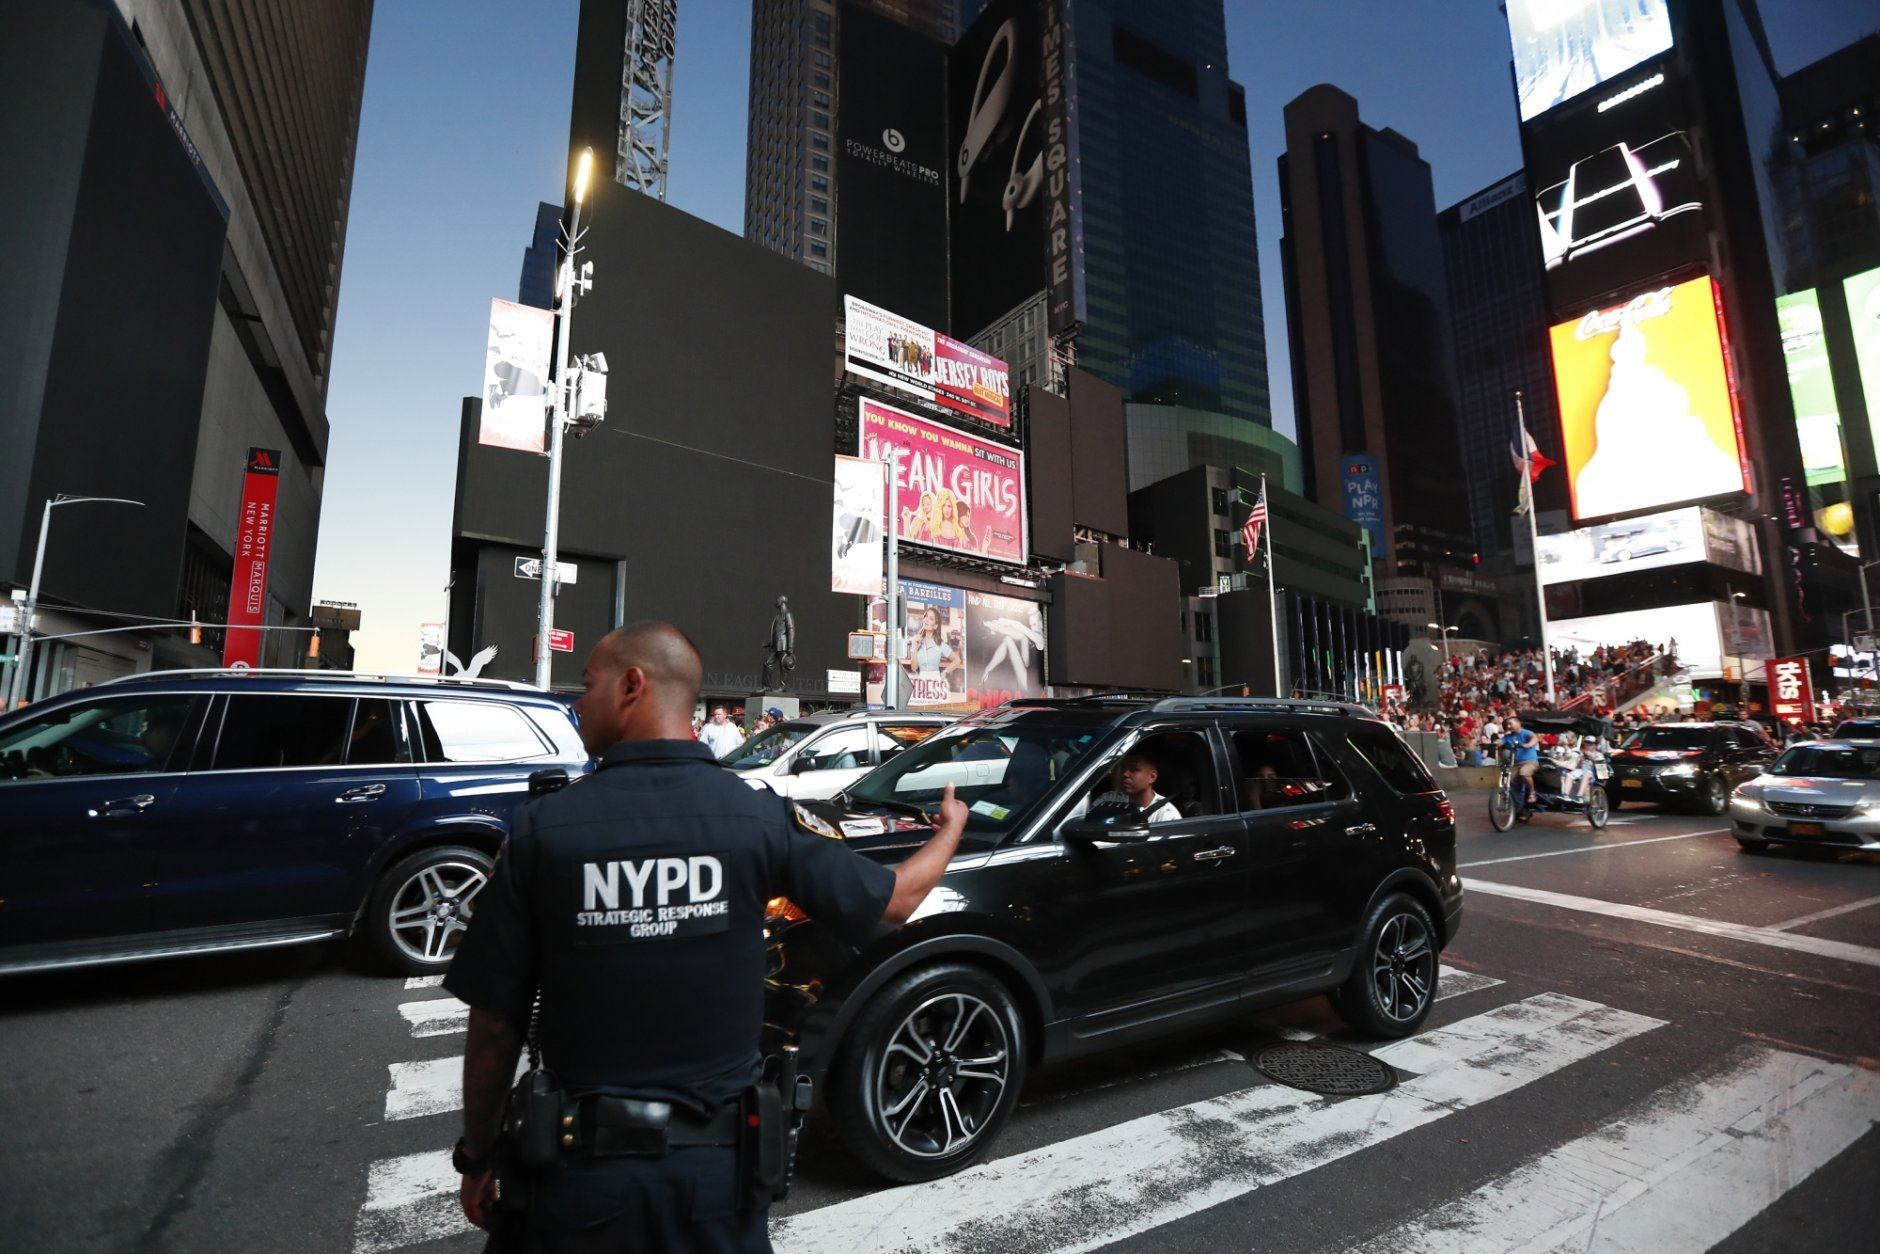 A police officer directs traffic in Times Square during a widespread power outage, Saturday, July 13, 2019, in the Manhattan borough of New York. Authorities say a transformer fire caused a power outage in Manhattan and left businesses without electricity, elevators stuck and subway cars stalled. (AP Photo/Michael Owens)